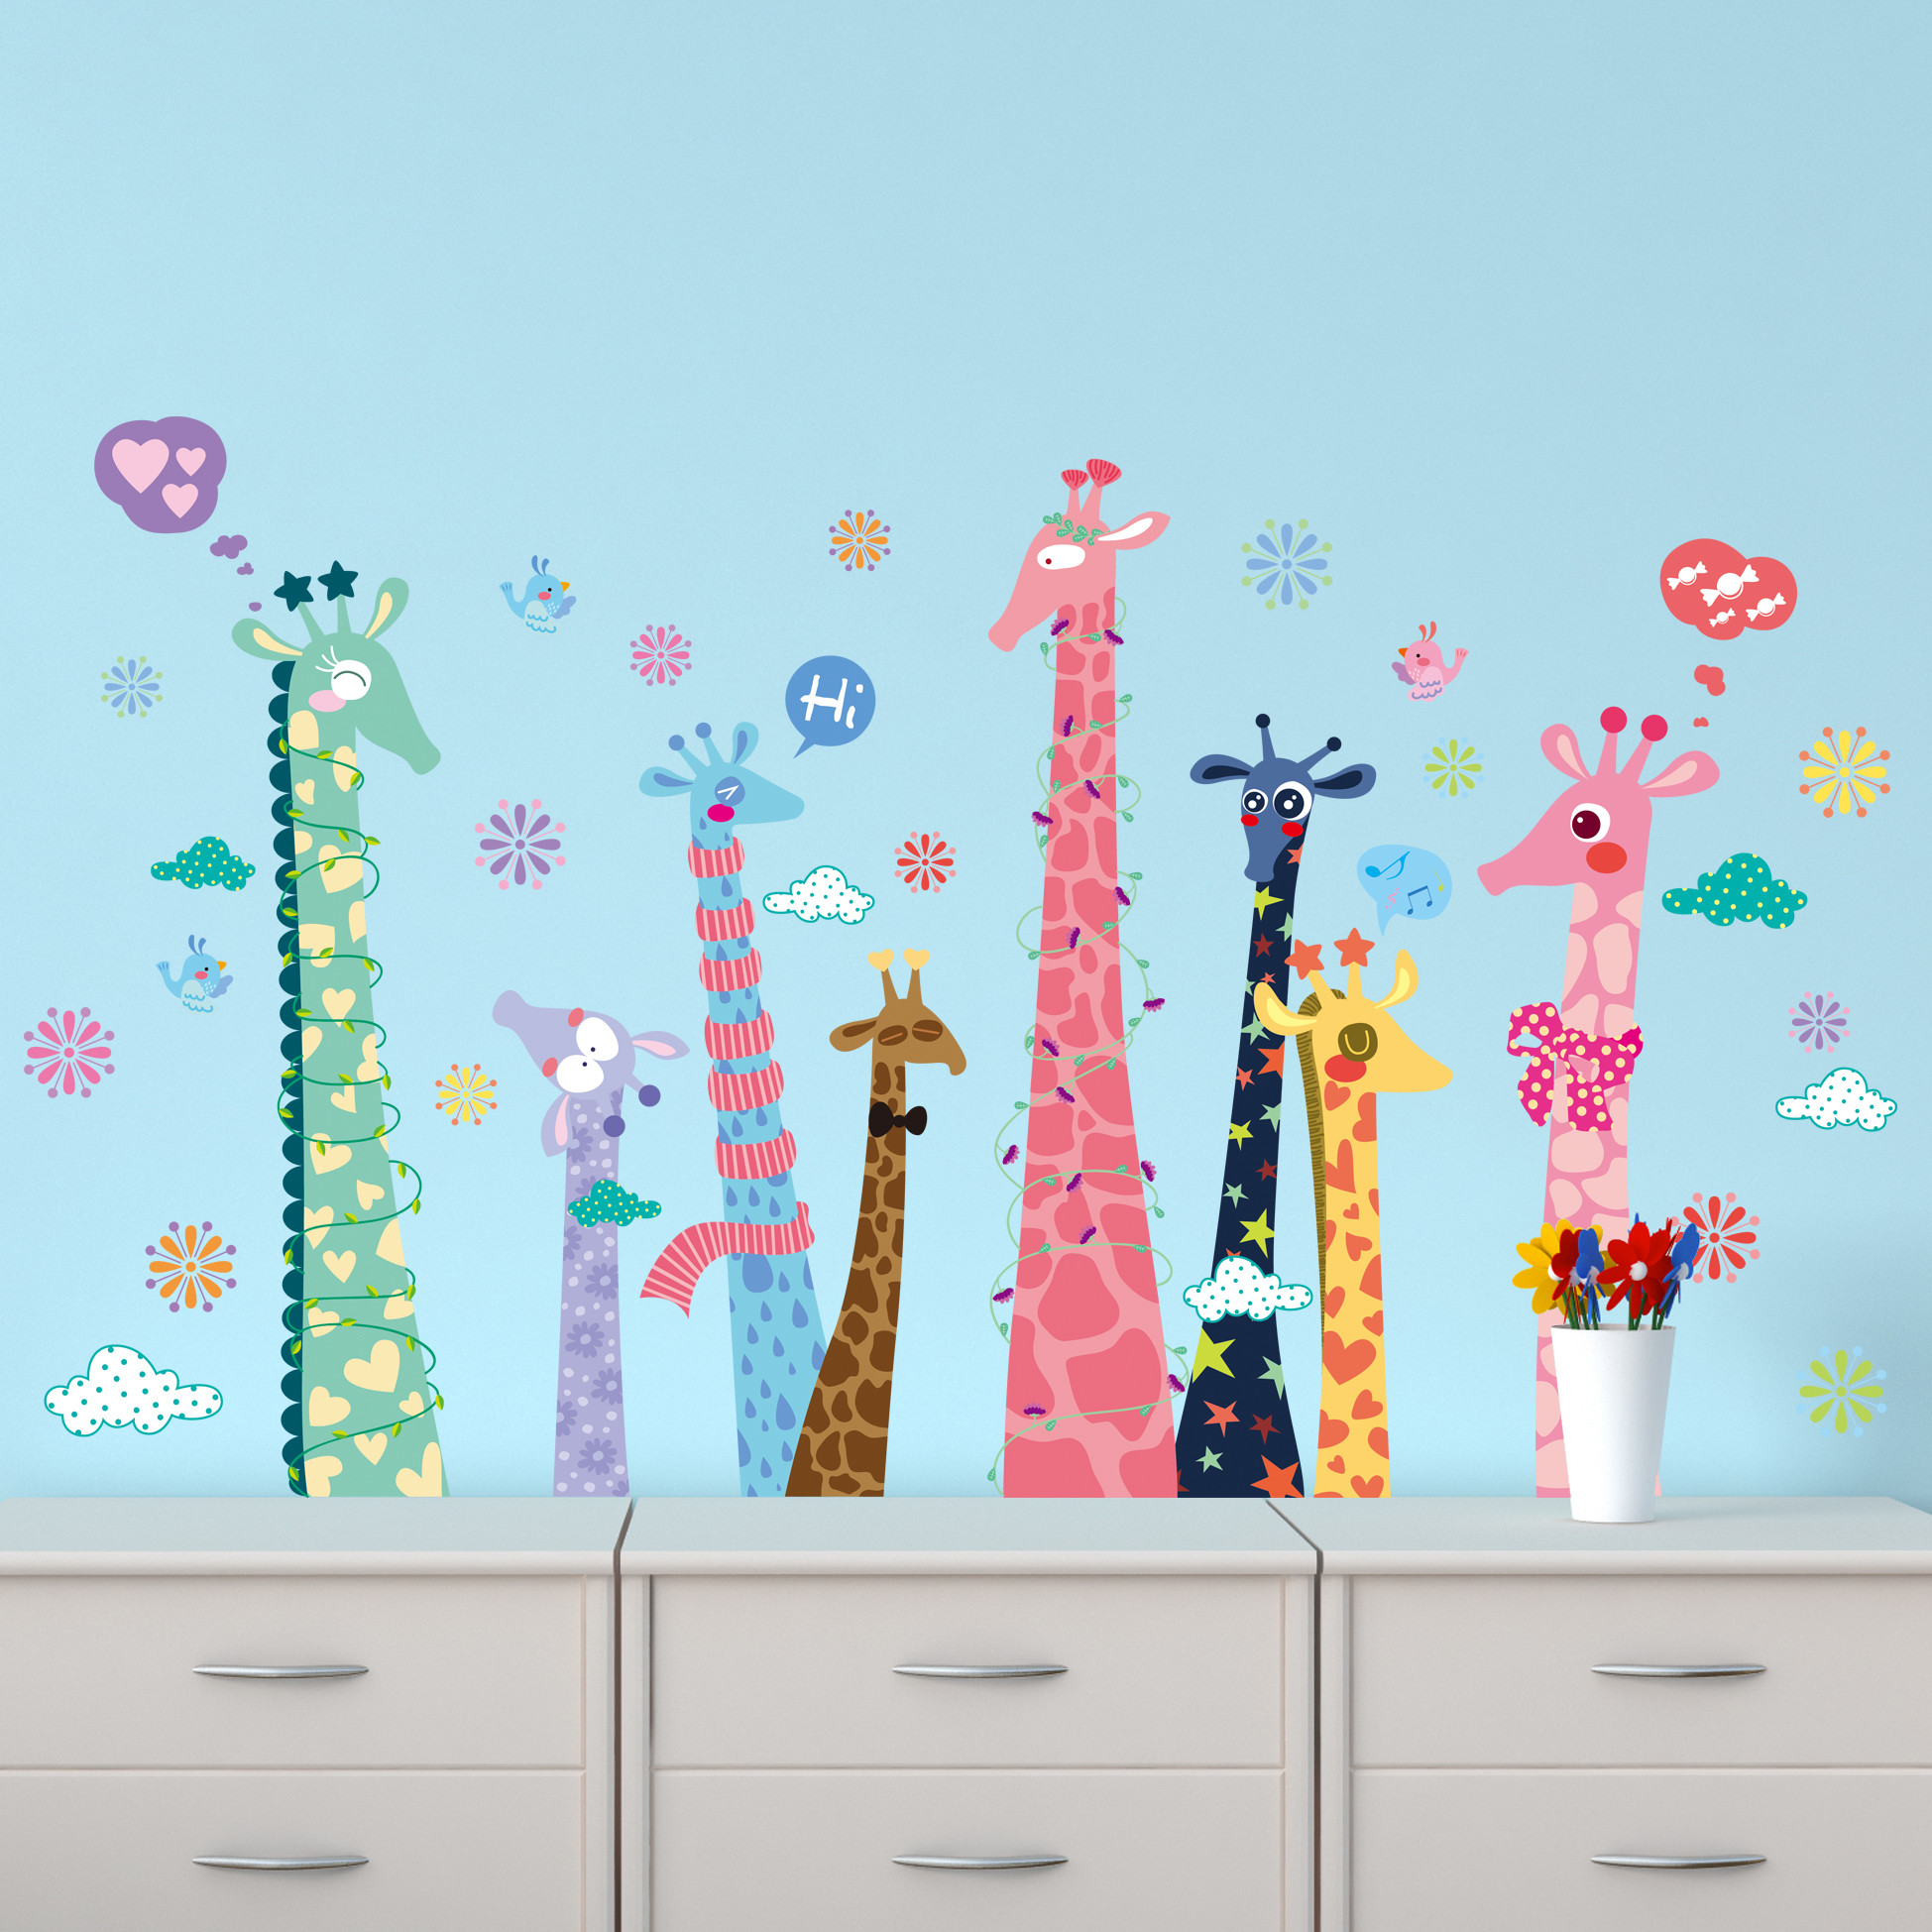 Res: 1949x1949, Colorful color giraffe Wallpaper For Kids Rooms Home Decor Art Decals 3D Sofa Bedroom house decoration DIY Vinyl Wall Stickers-in Wall Stickers from Home ...